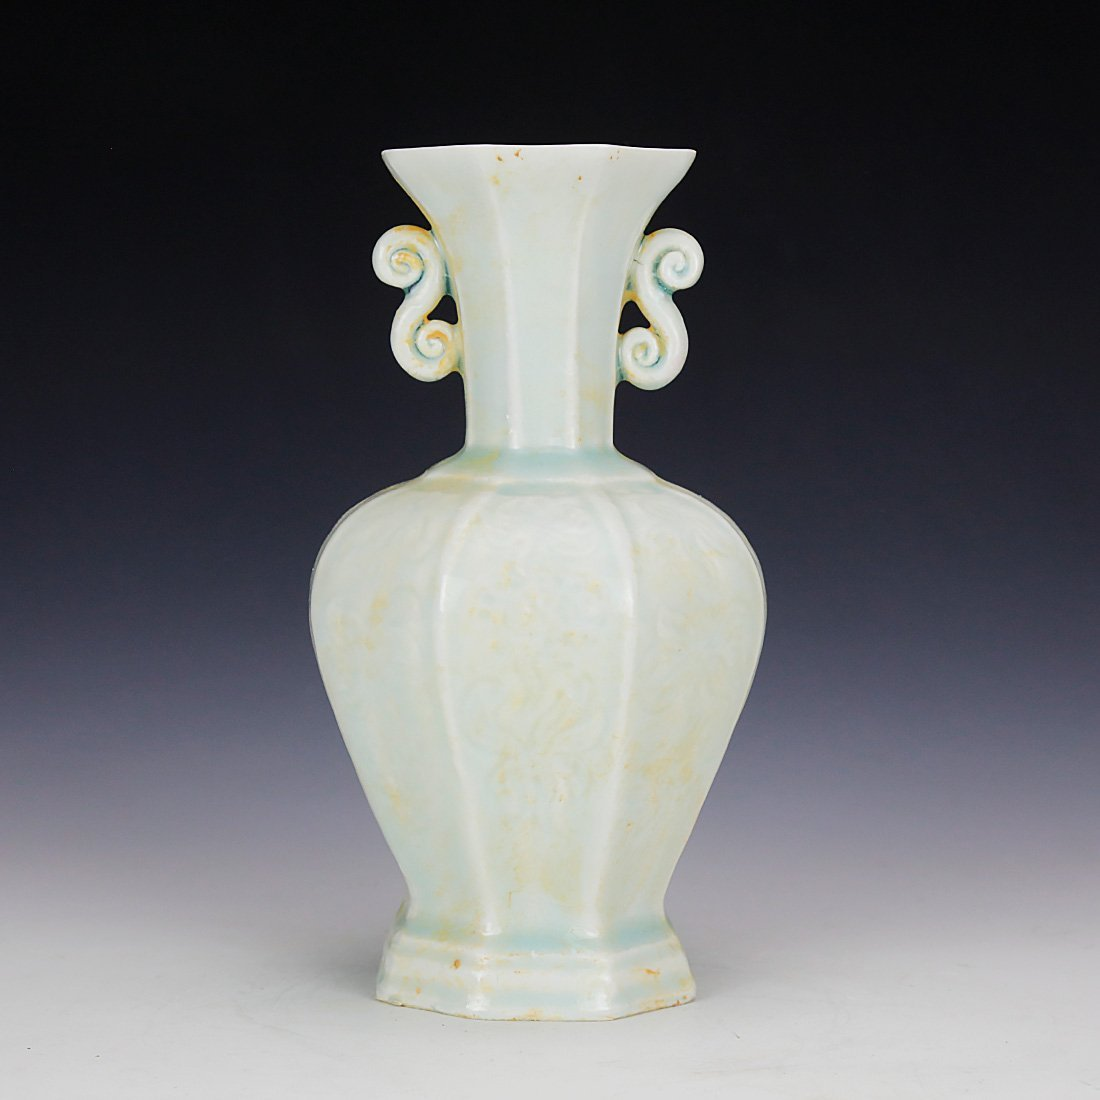 Celadon vase in the Song Dynasty 13 Century